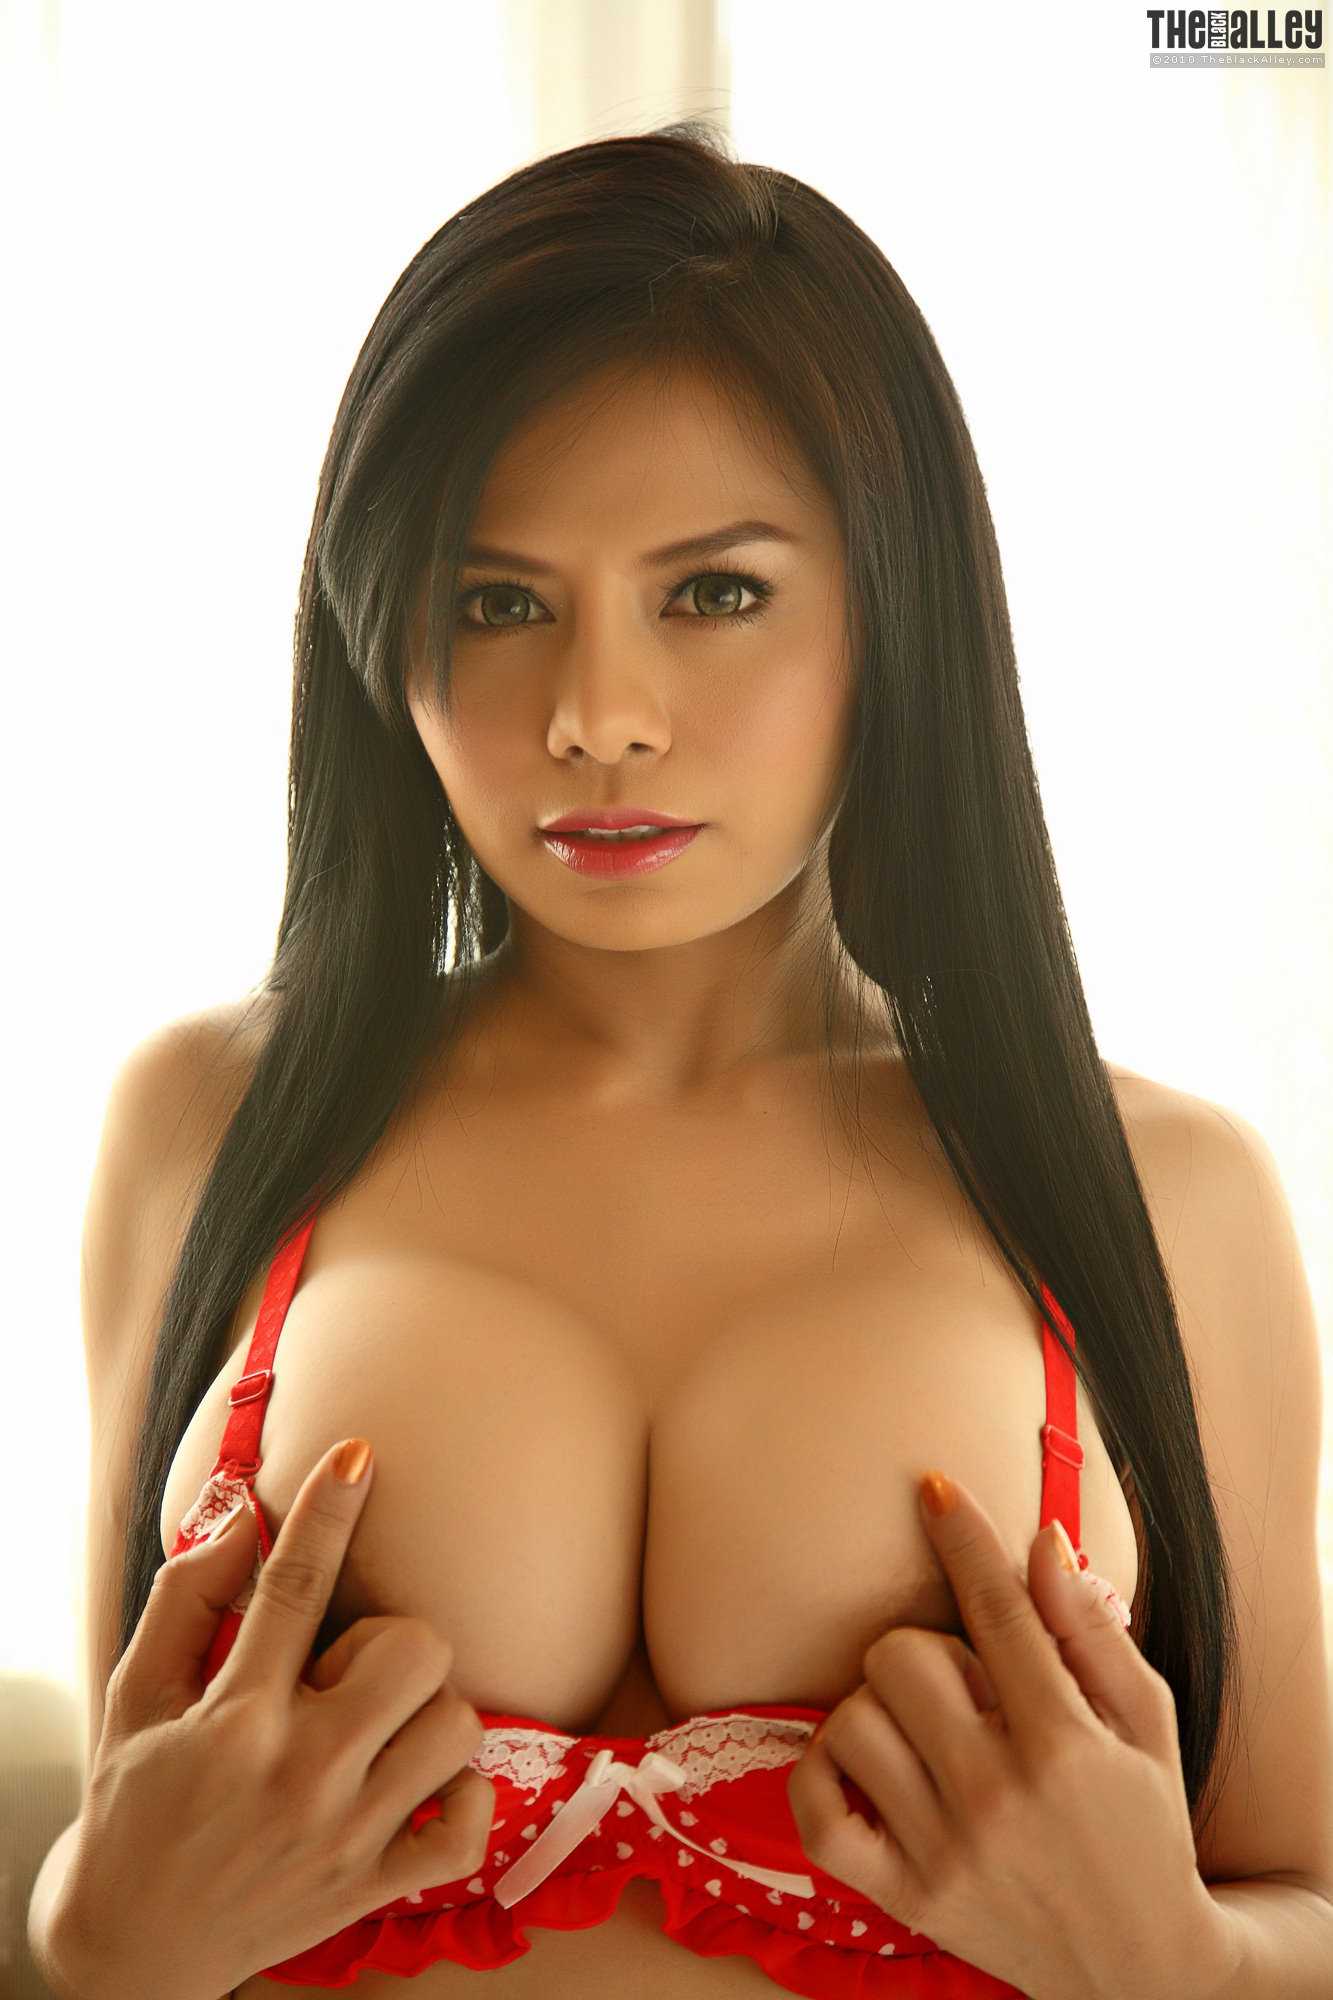 Asian girls are sweets and very sexy r 4